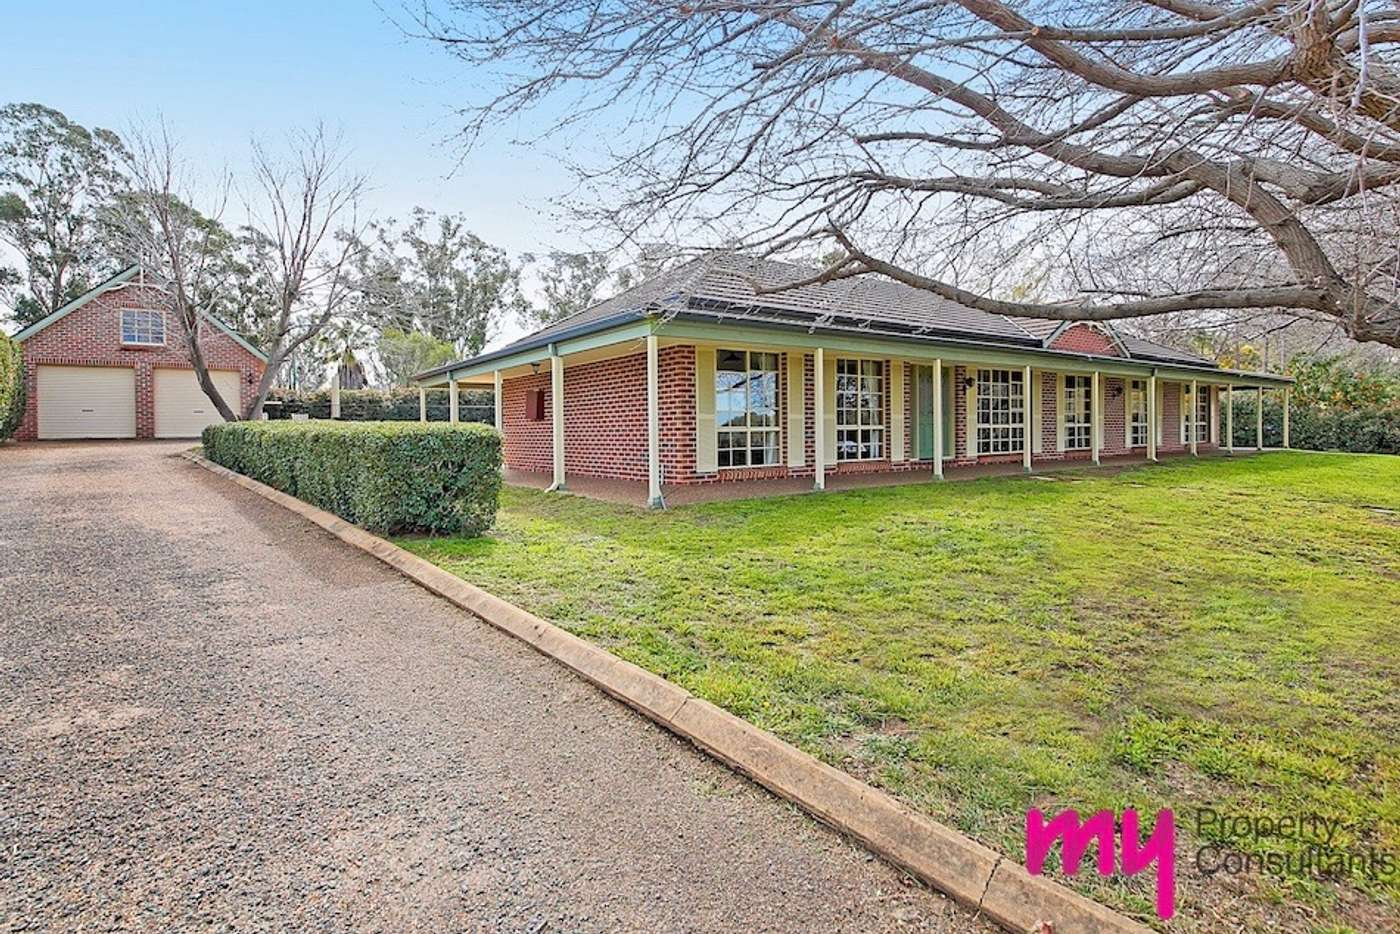 Main view of Homely house listing, 244 Cobbitty Road, Cobbitty NSW 2570